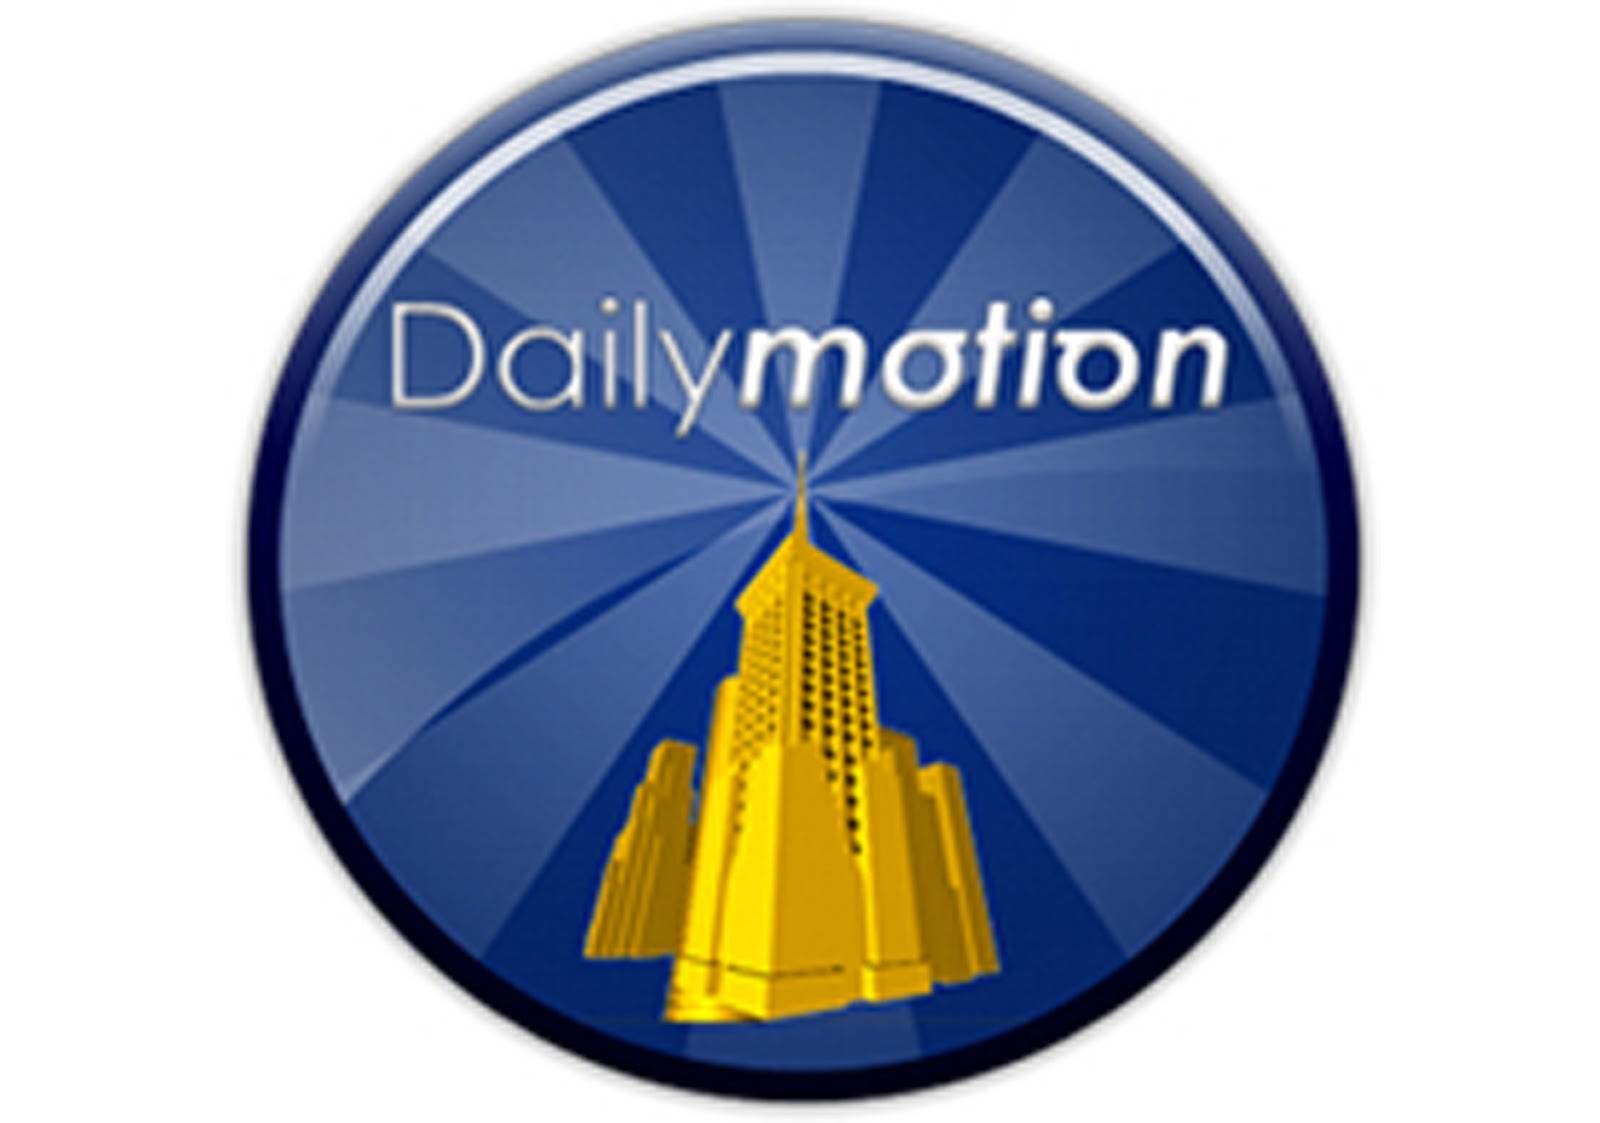 Dailymotion Logo - icon Jpeg & Png images Brand New with large Size - Azaaditv.blogspot.com ...